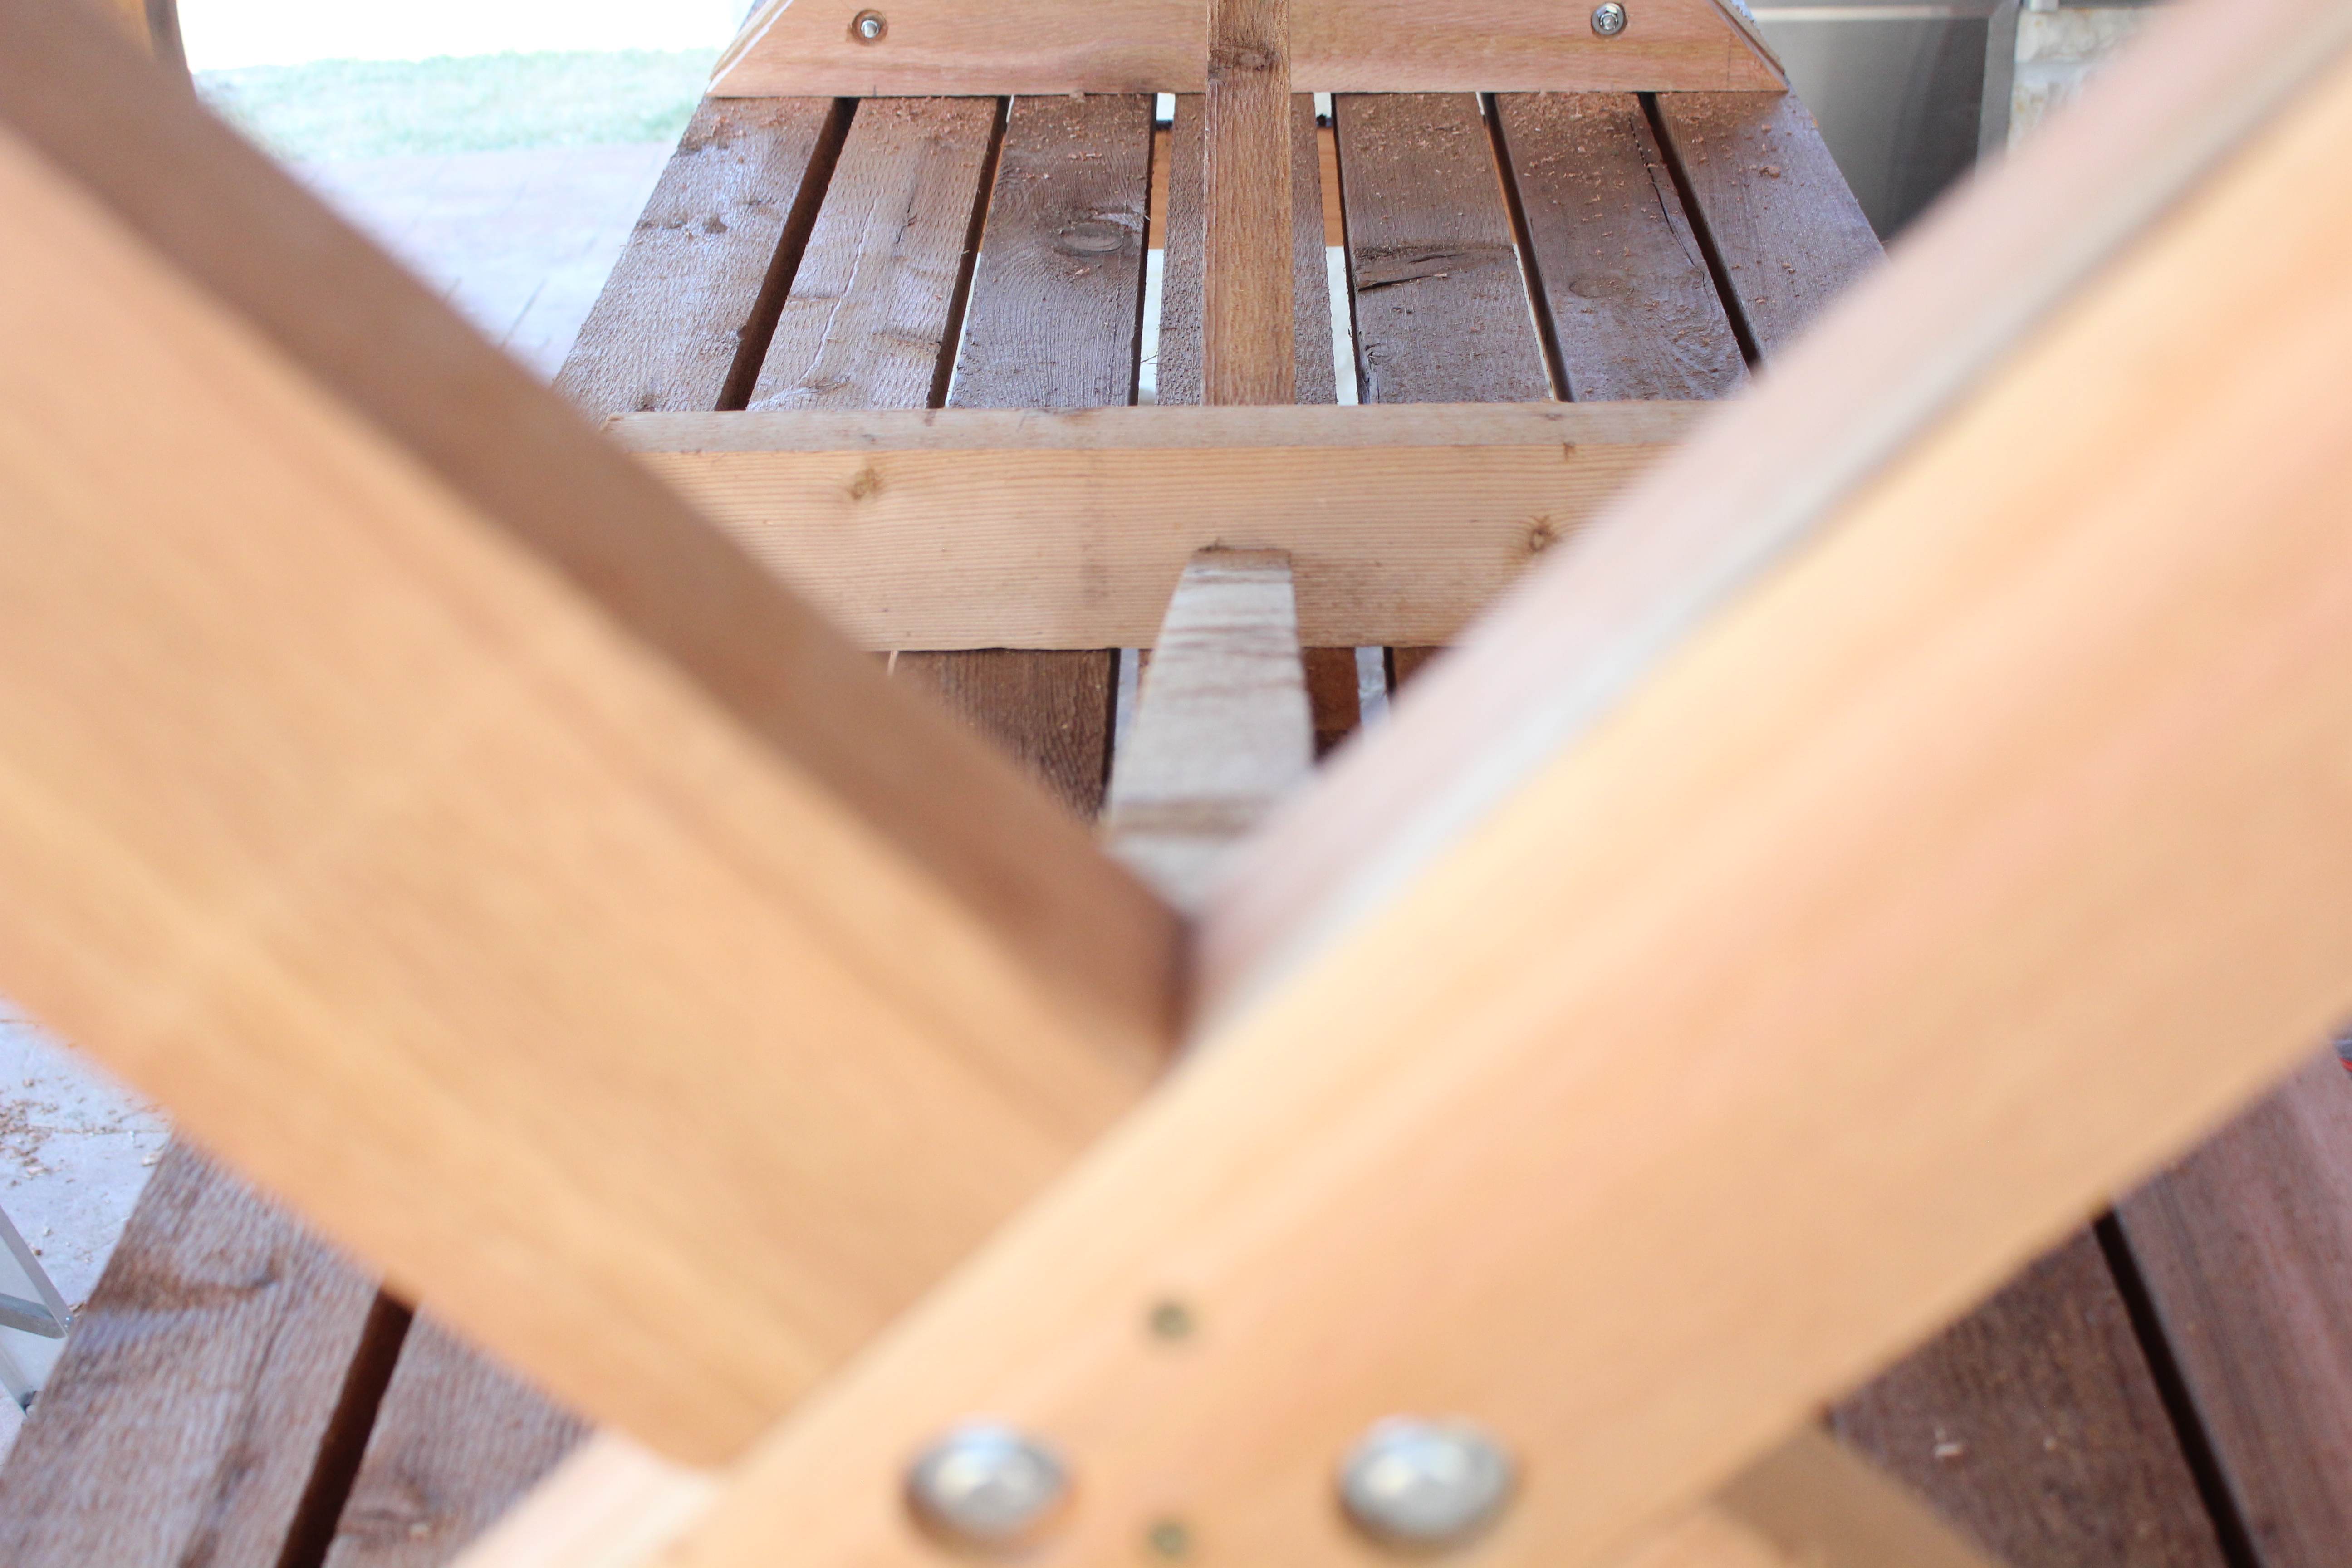 Picture of Insert Braces and Center Beam